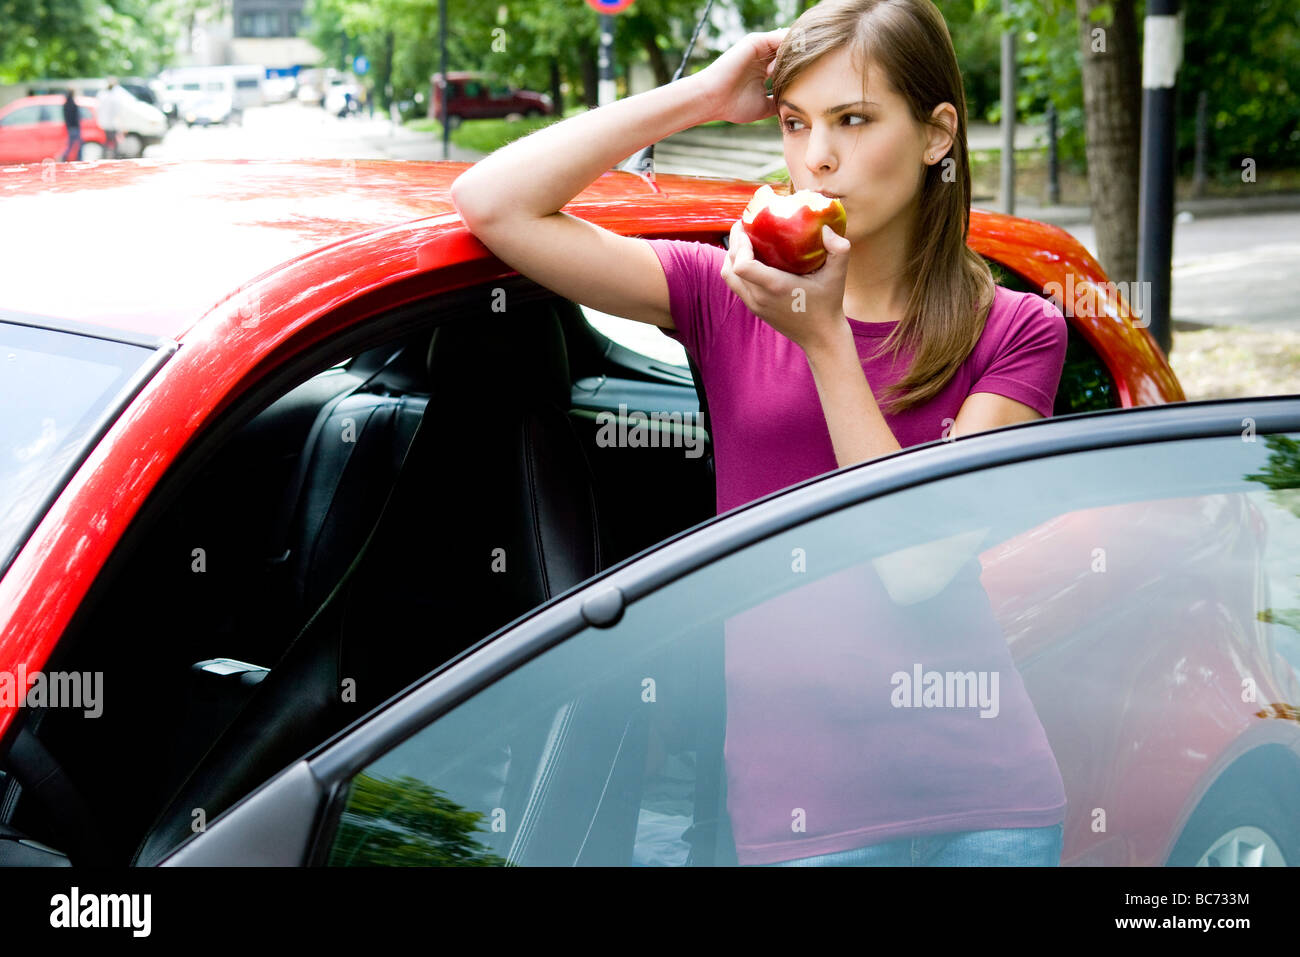 woman eating apple in car - Stock Image